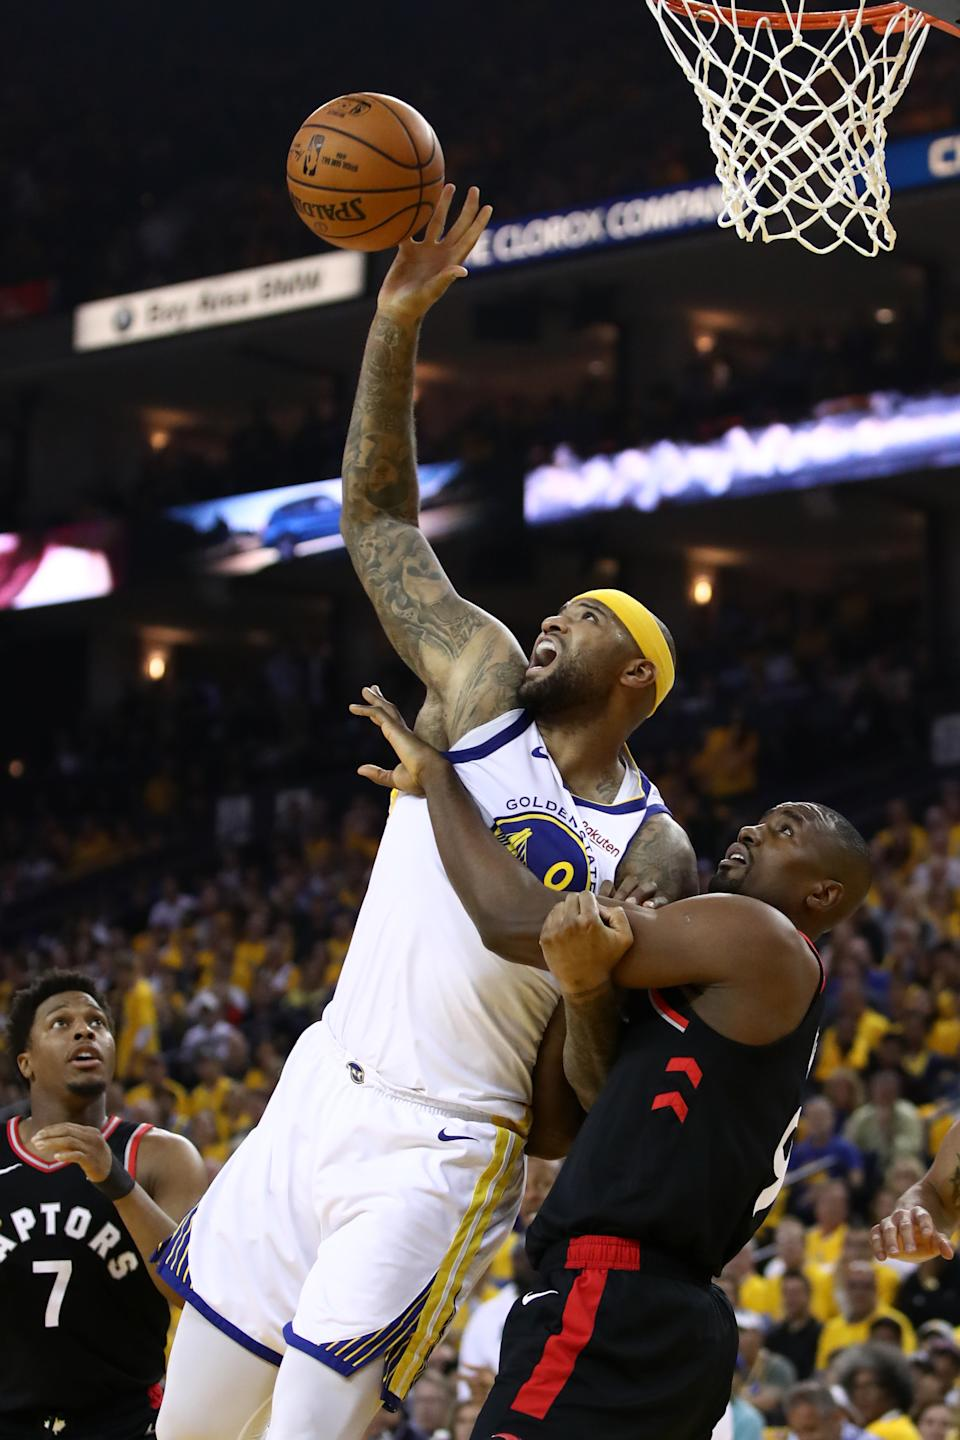 DeMarcus Cousins #0 of the Golden State Warriors attempts to control the ball against the Toronto Raptors in the first half during Game Three of the 2019 NBA Finals at ORACLE Arena on June 05, 2019 in Oakland, California. (Photo by Ezra Shaw/Getty Images)